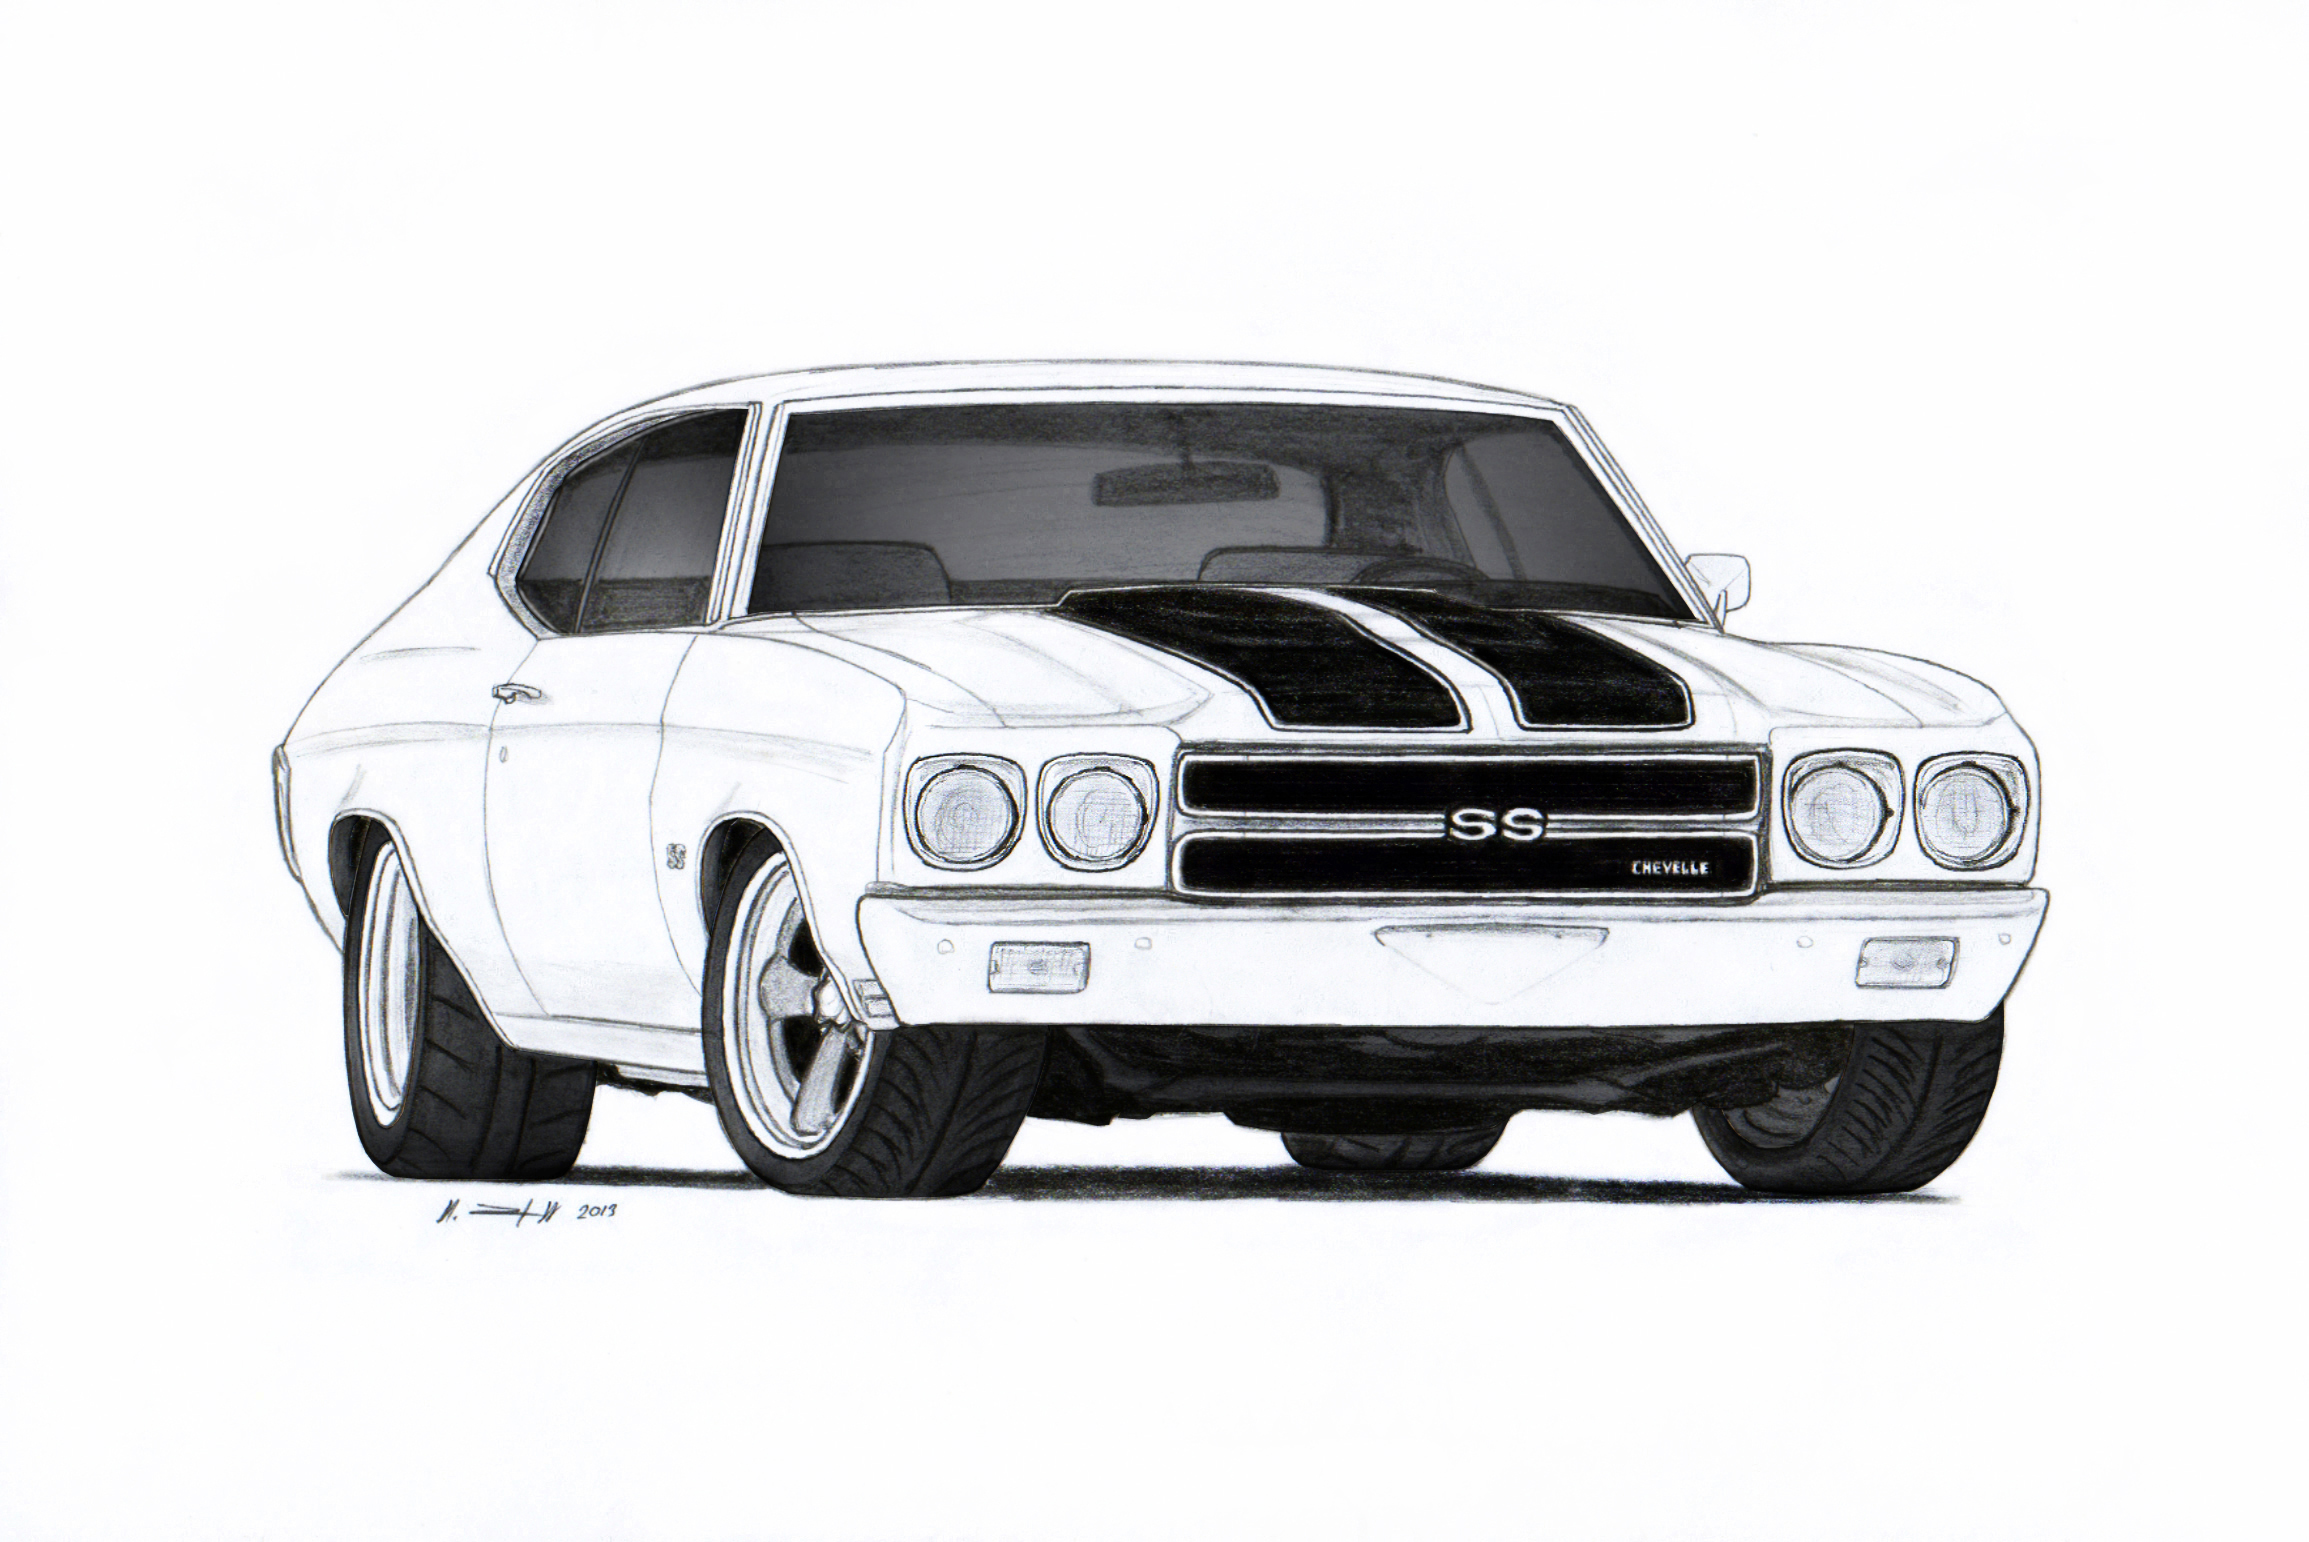 1970 Chevrolet Chevelle Ss Pro Touring Drawing By Vertualissimo On